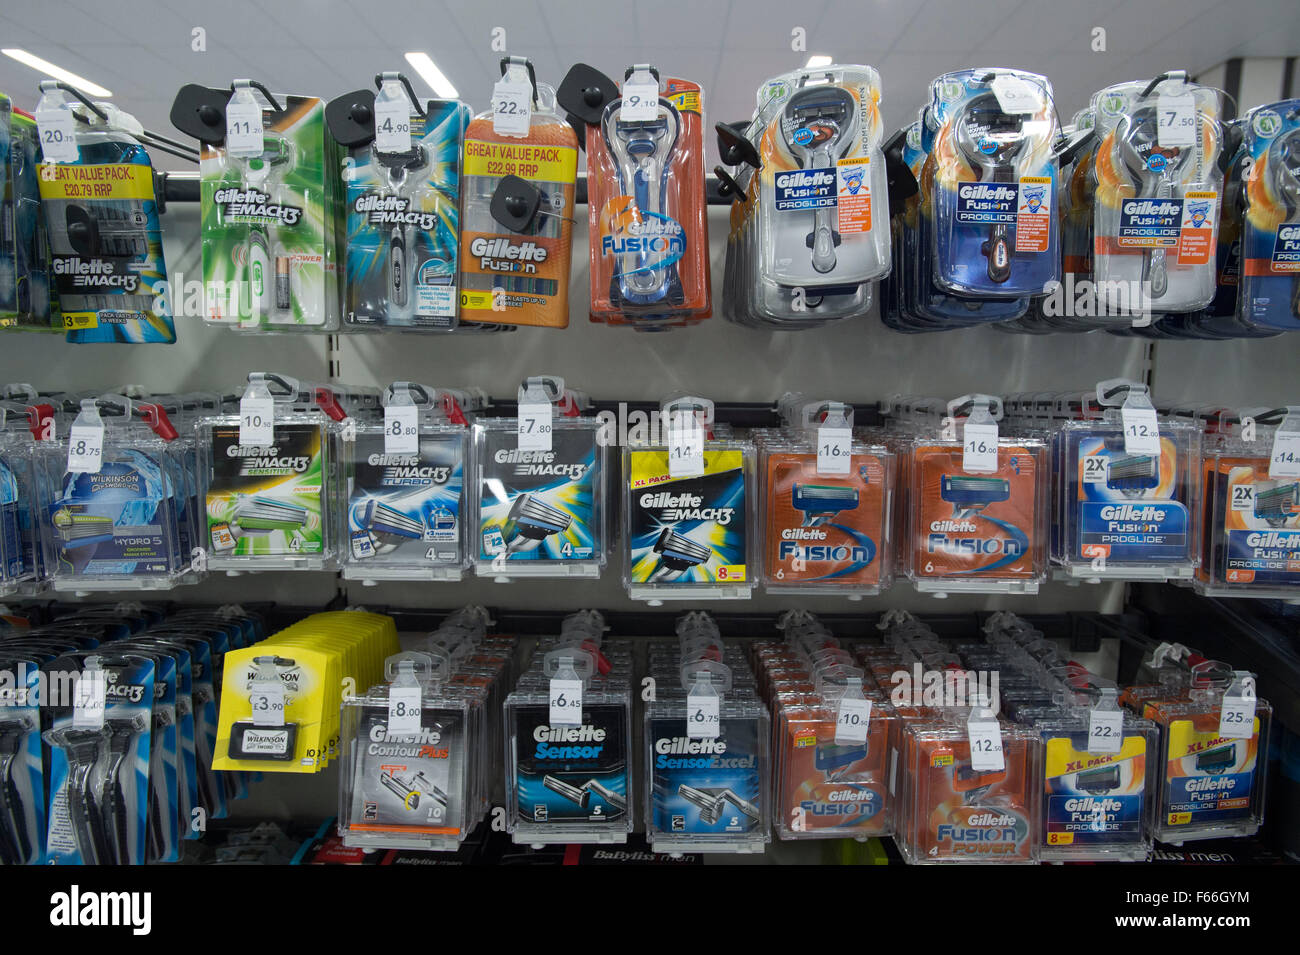 Mens razor blades for sale on a shelf in a supermarket. - Stock Image